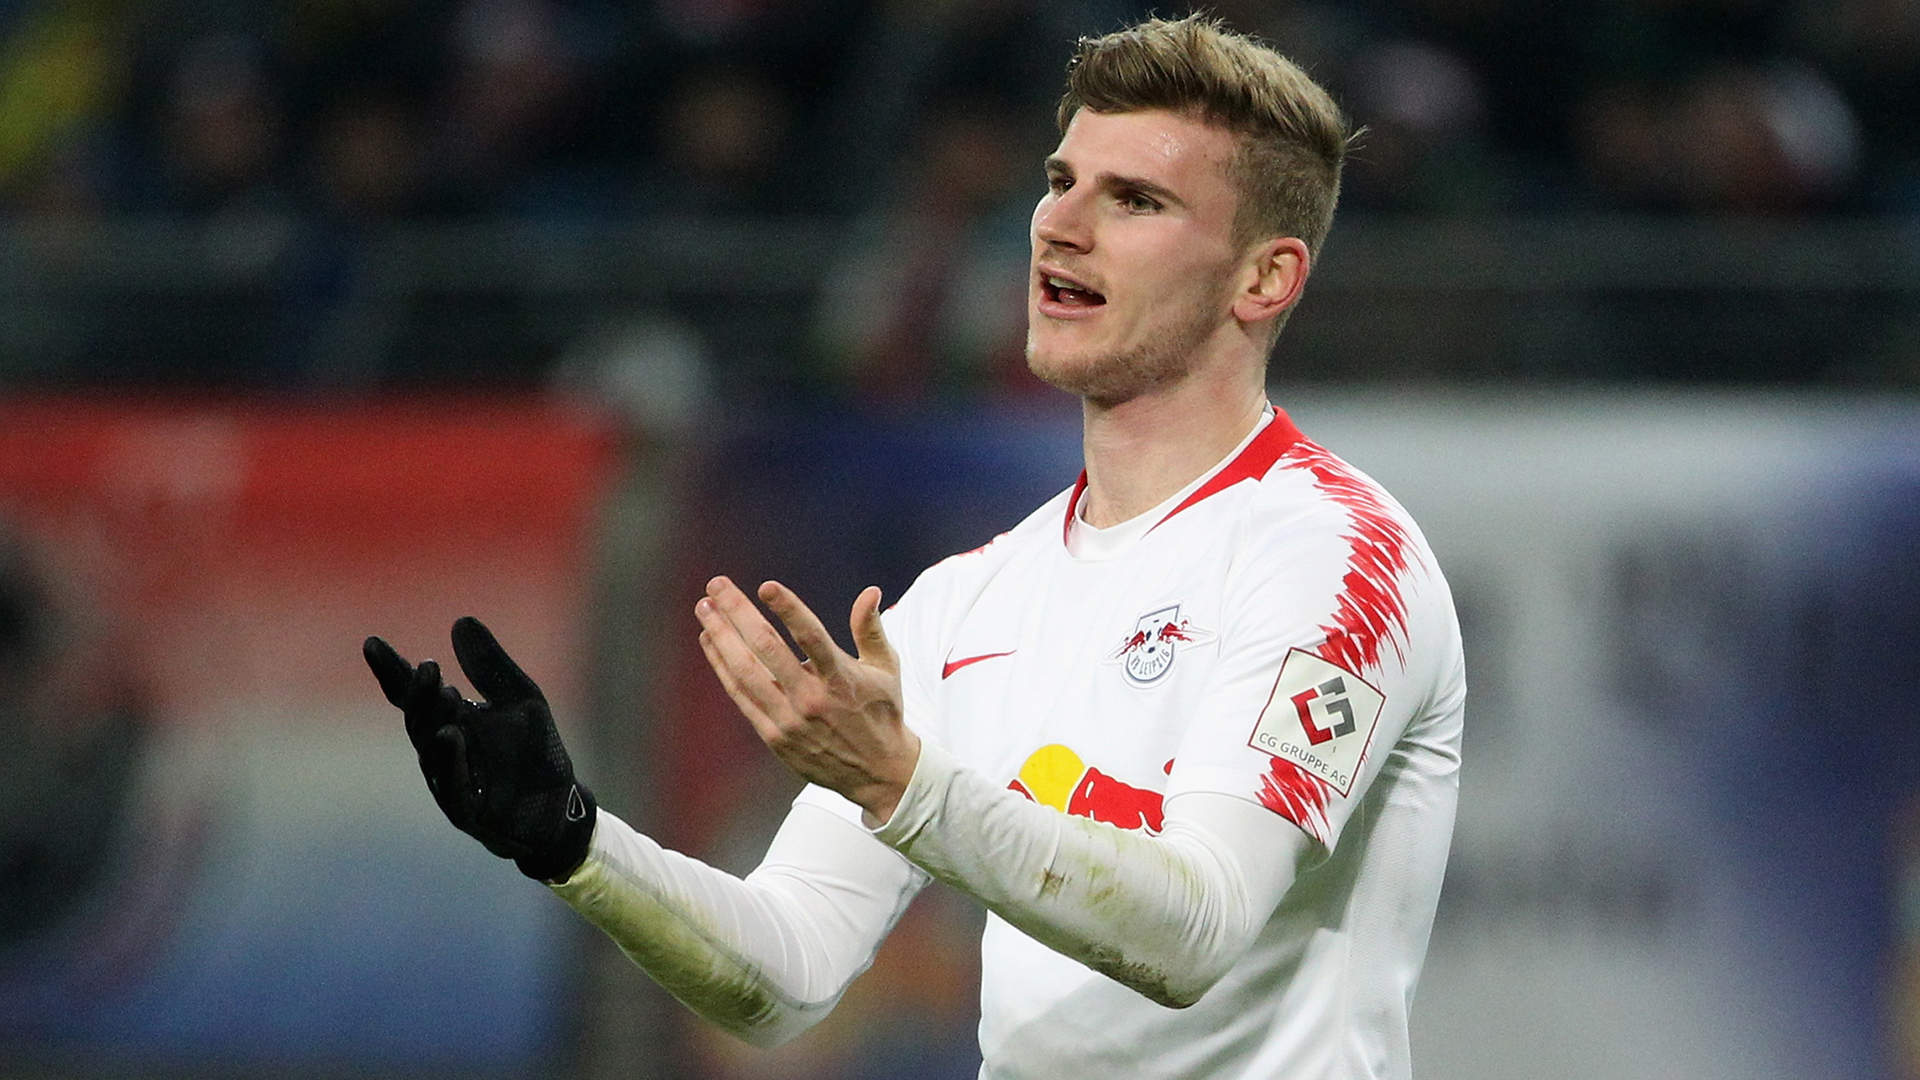 'We have not talked to Bayern about Werner yet' - Leipzig CEO hopeful of retaining striker